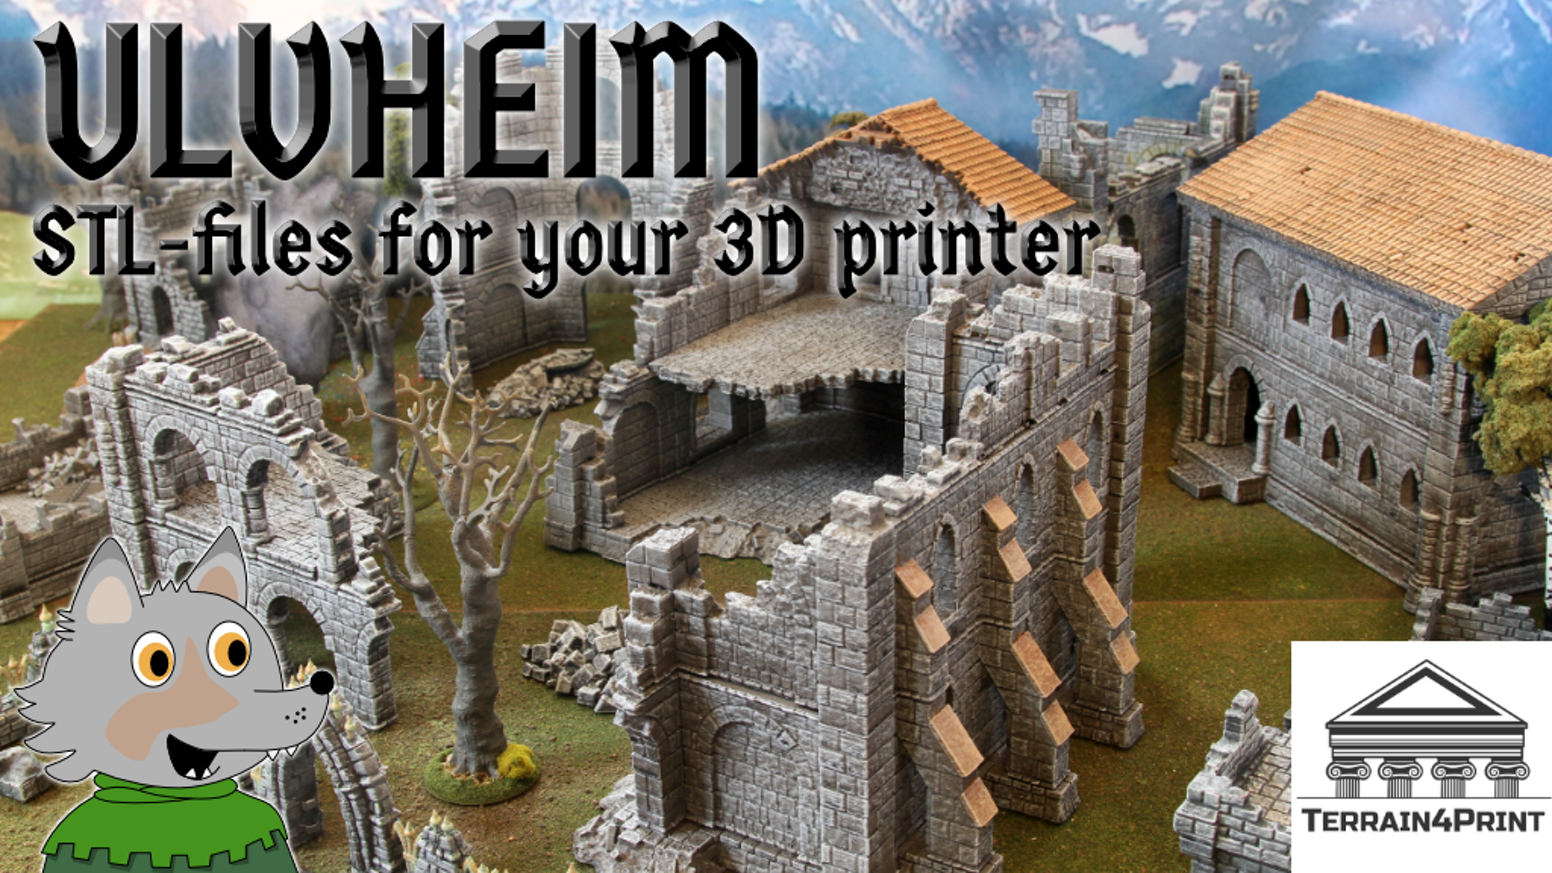 This project aims to expand the Ulvheim ruin into a full-featured ruin city for your home 3D printer.